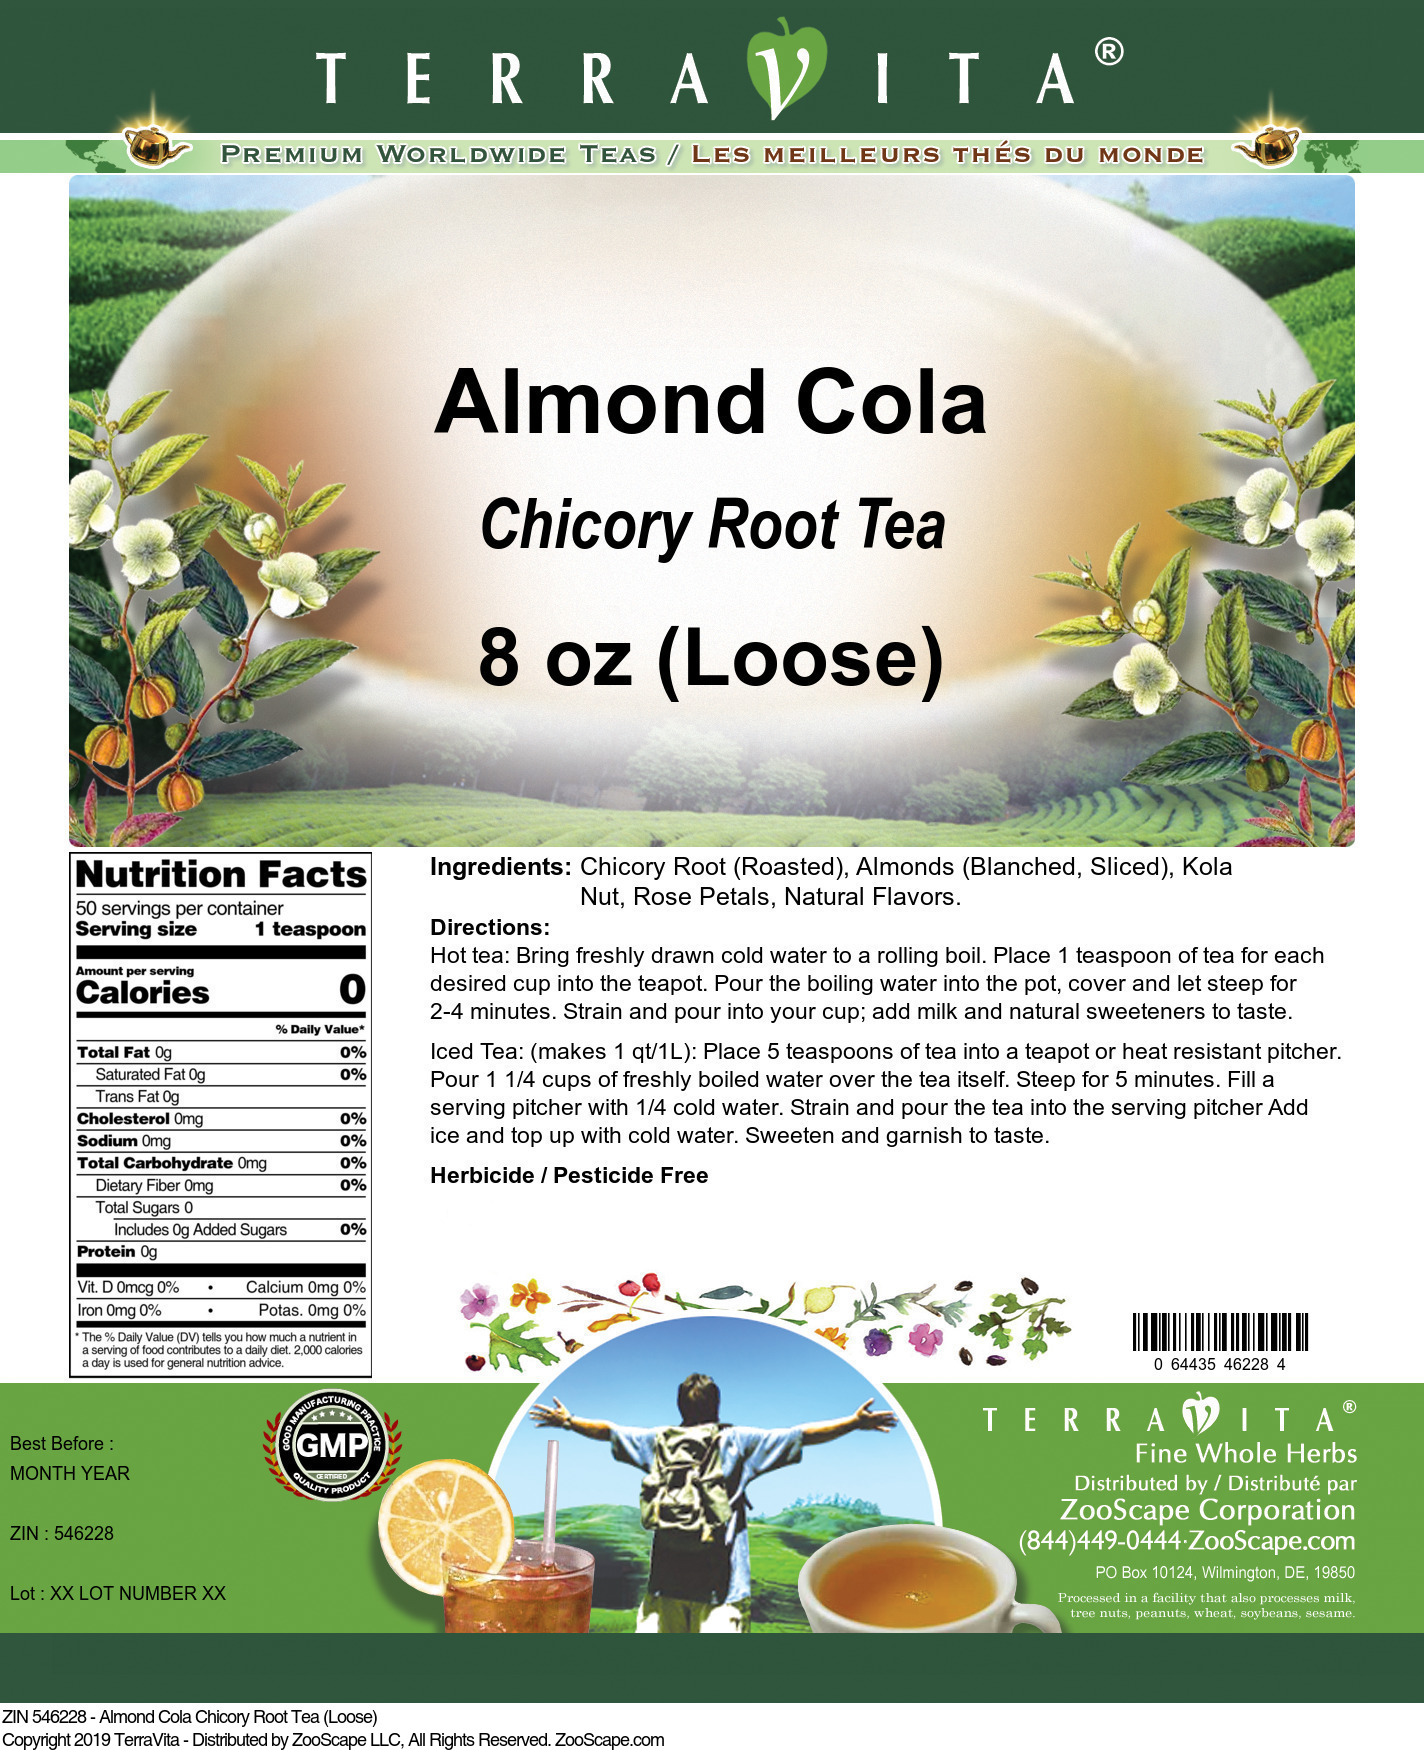 Almond Cola Chicory Root